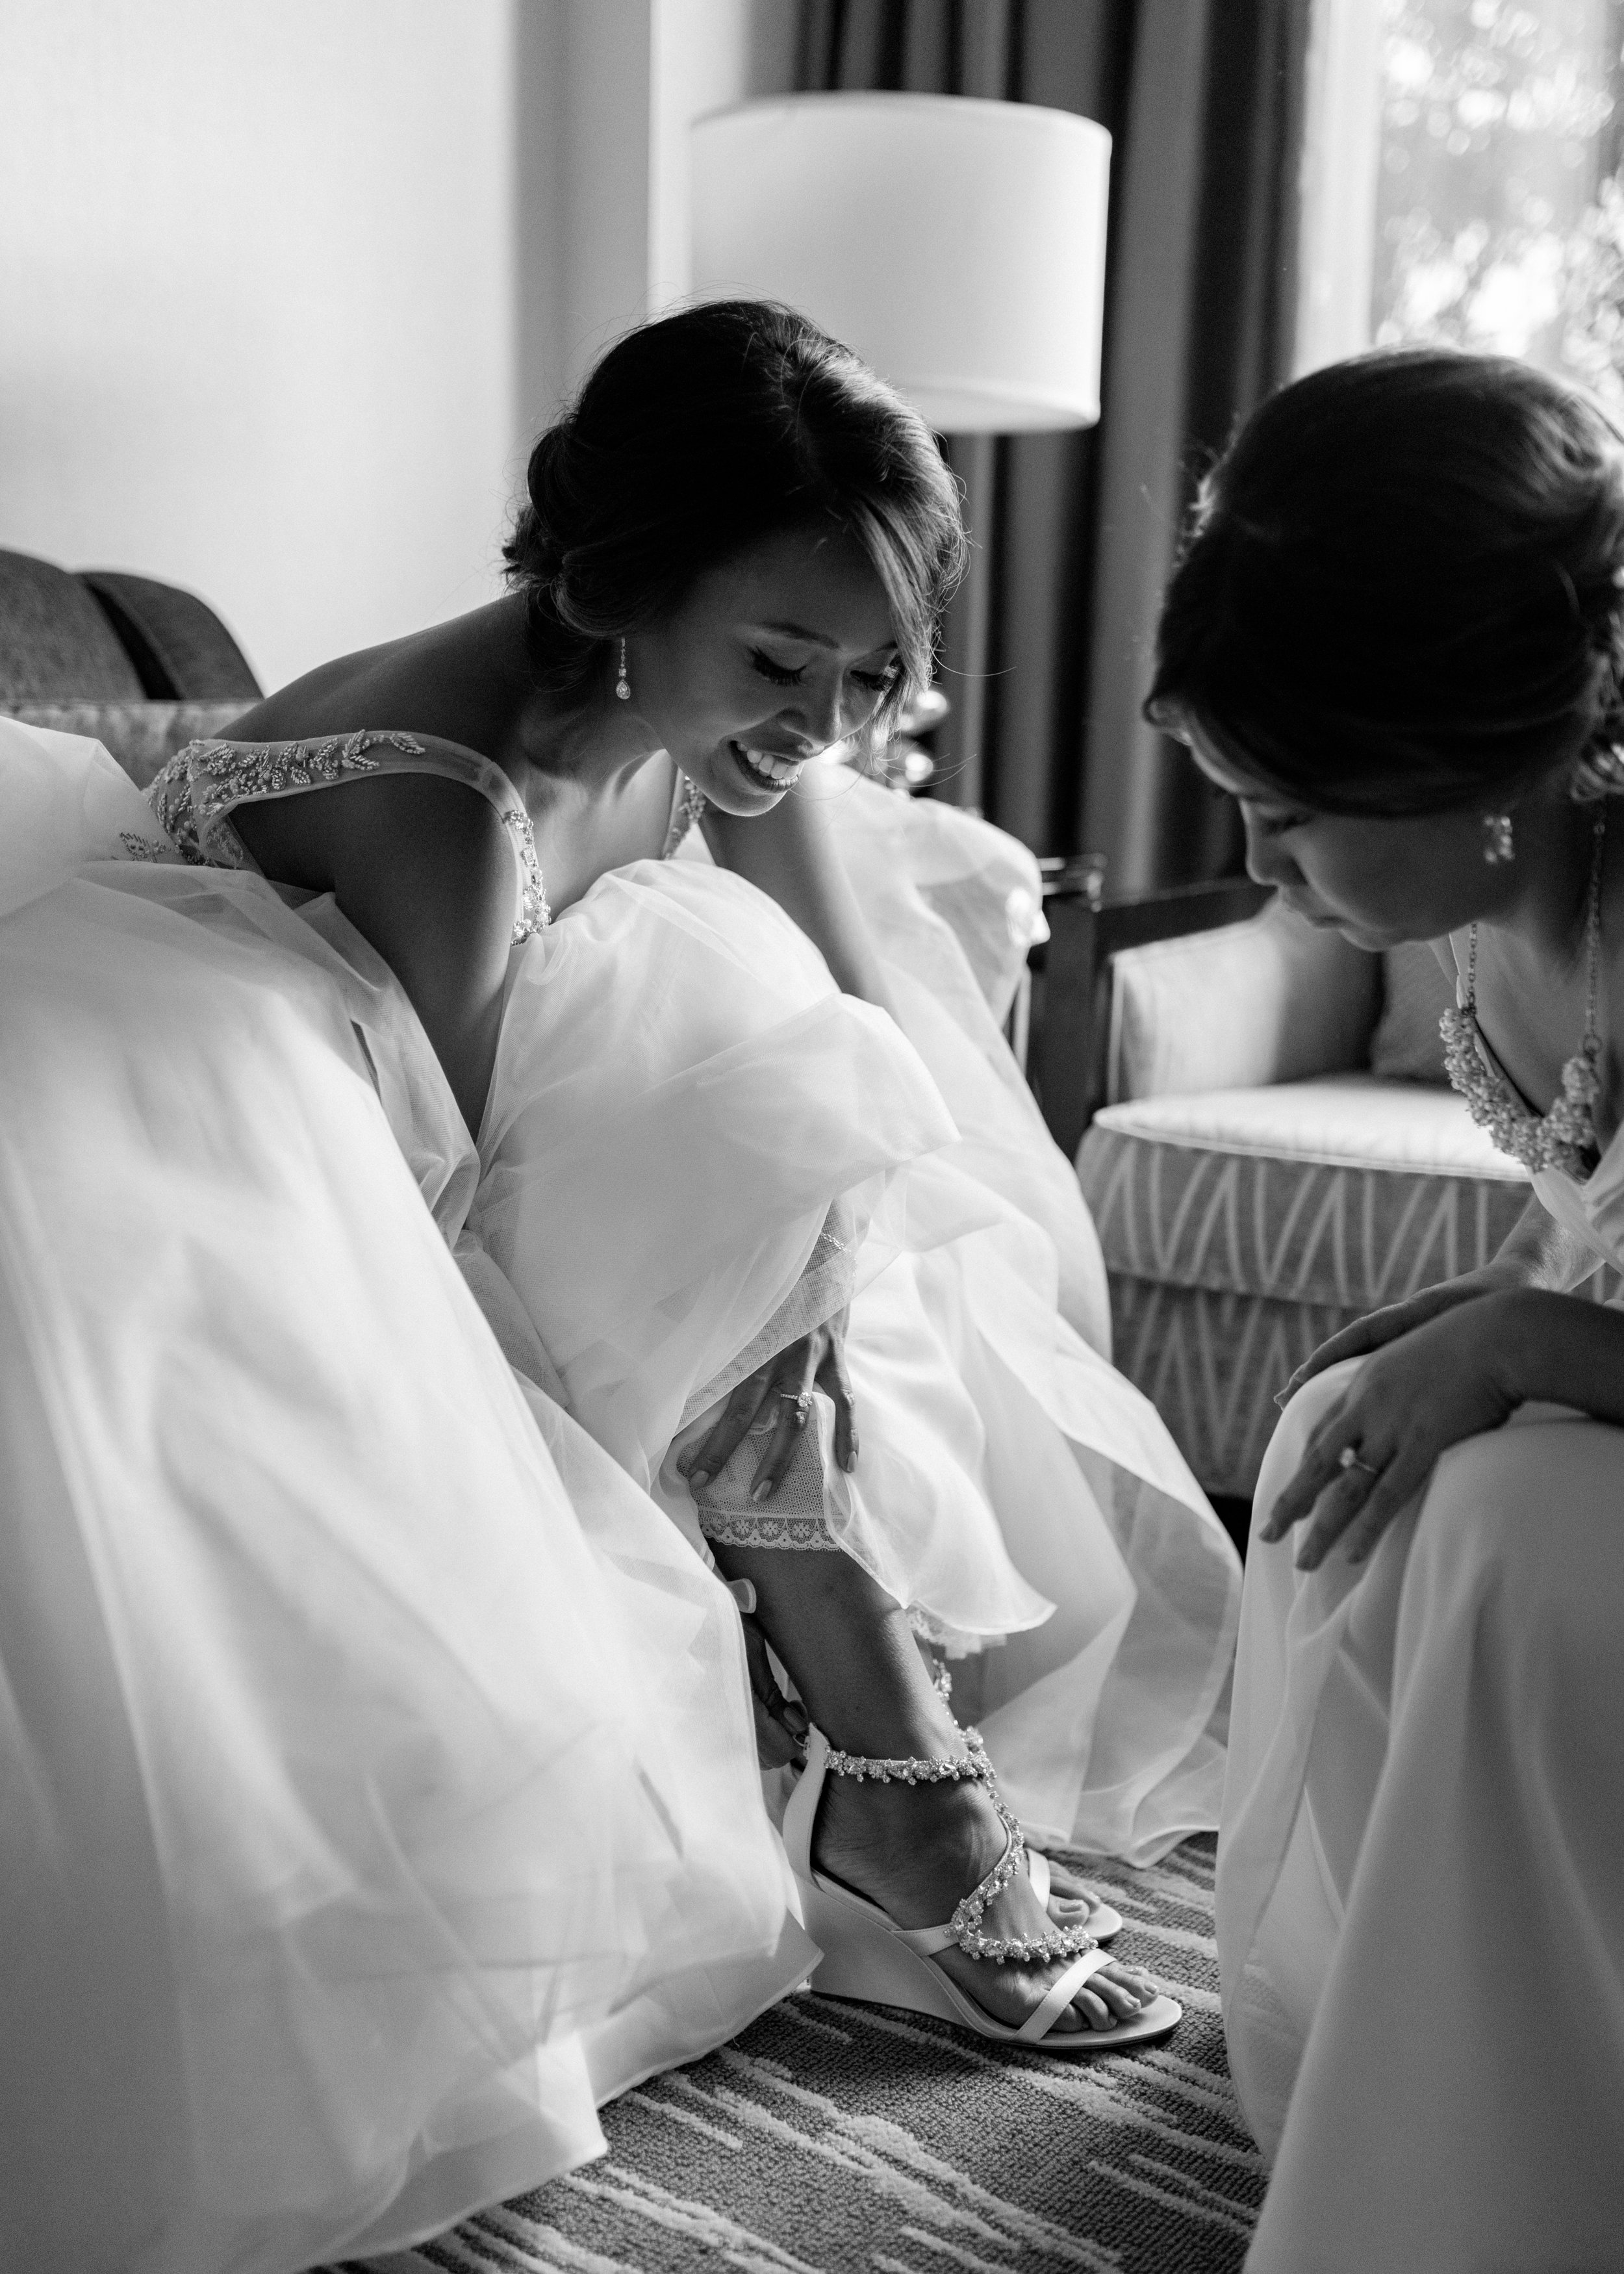 herastudios_wedding_nicole_michael_hera_selects-25.jpg